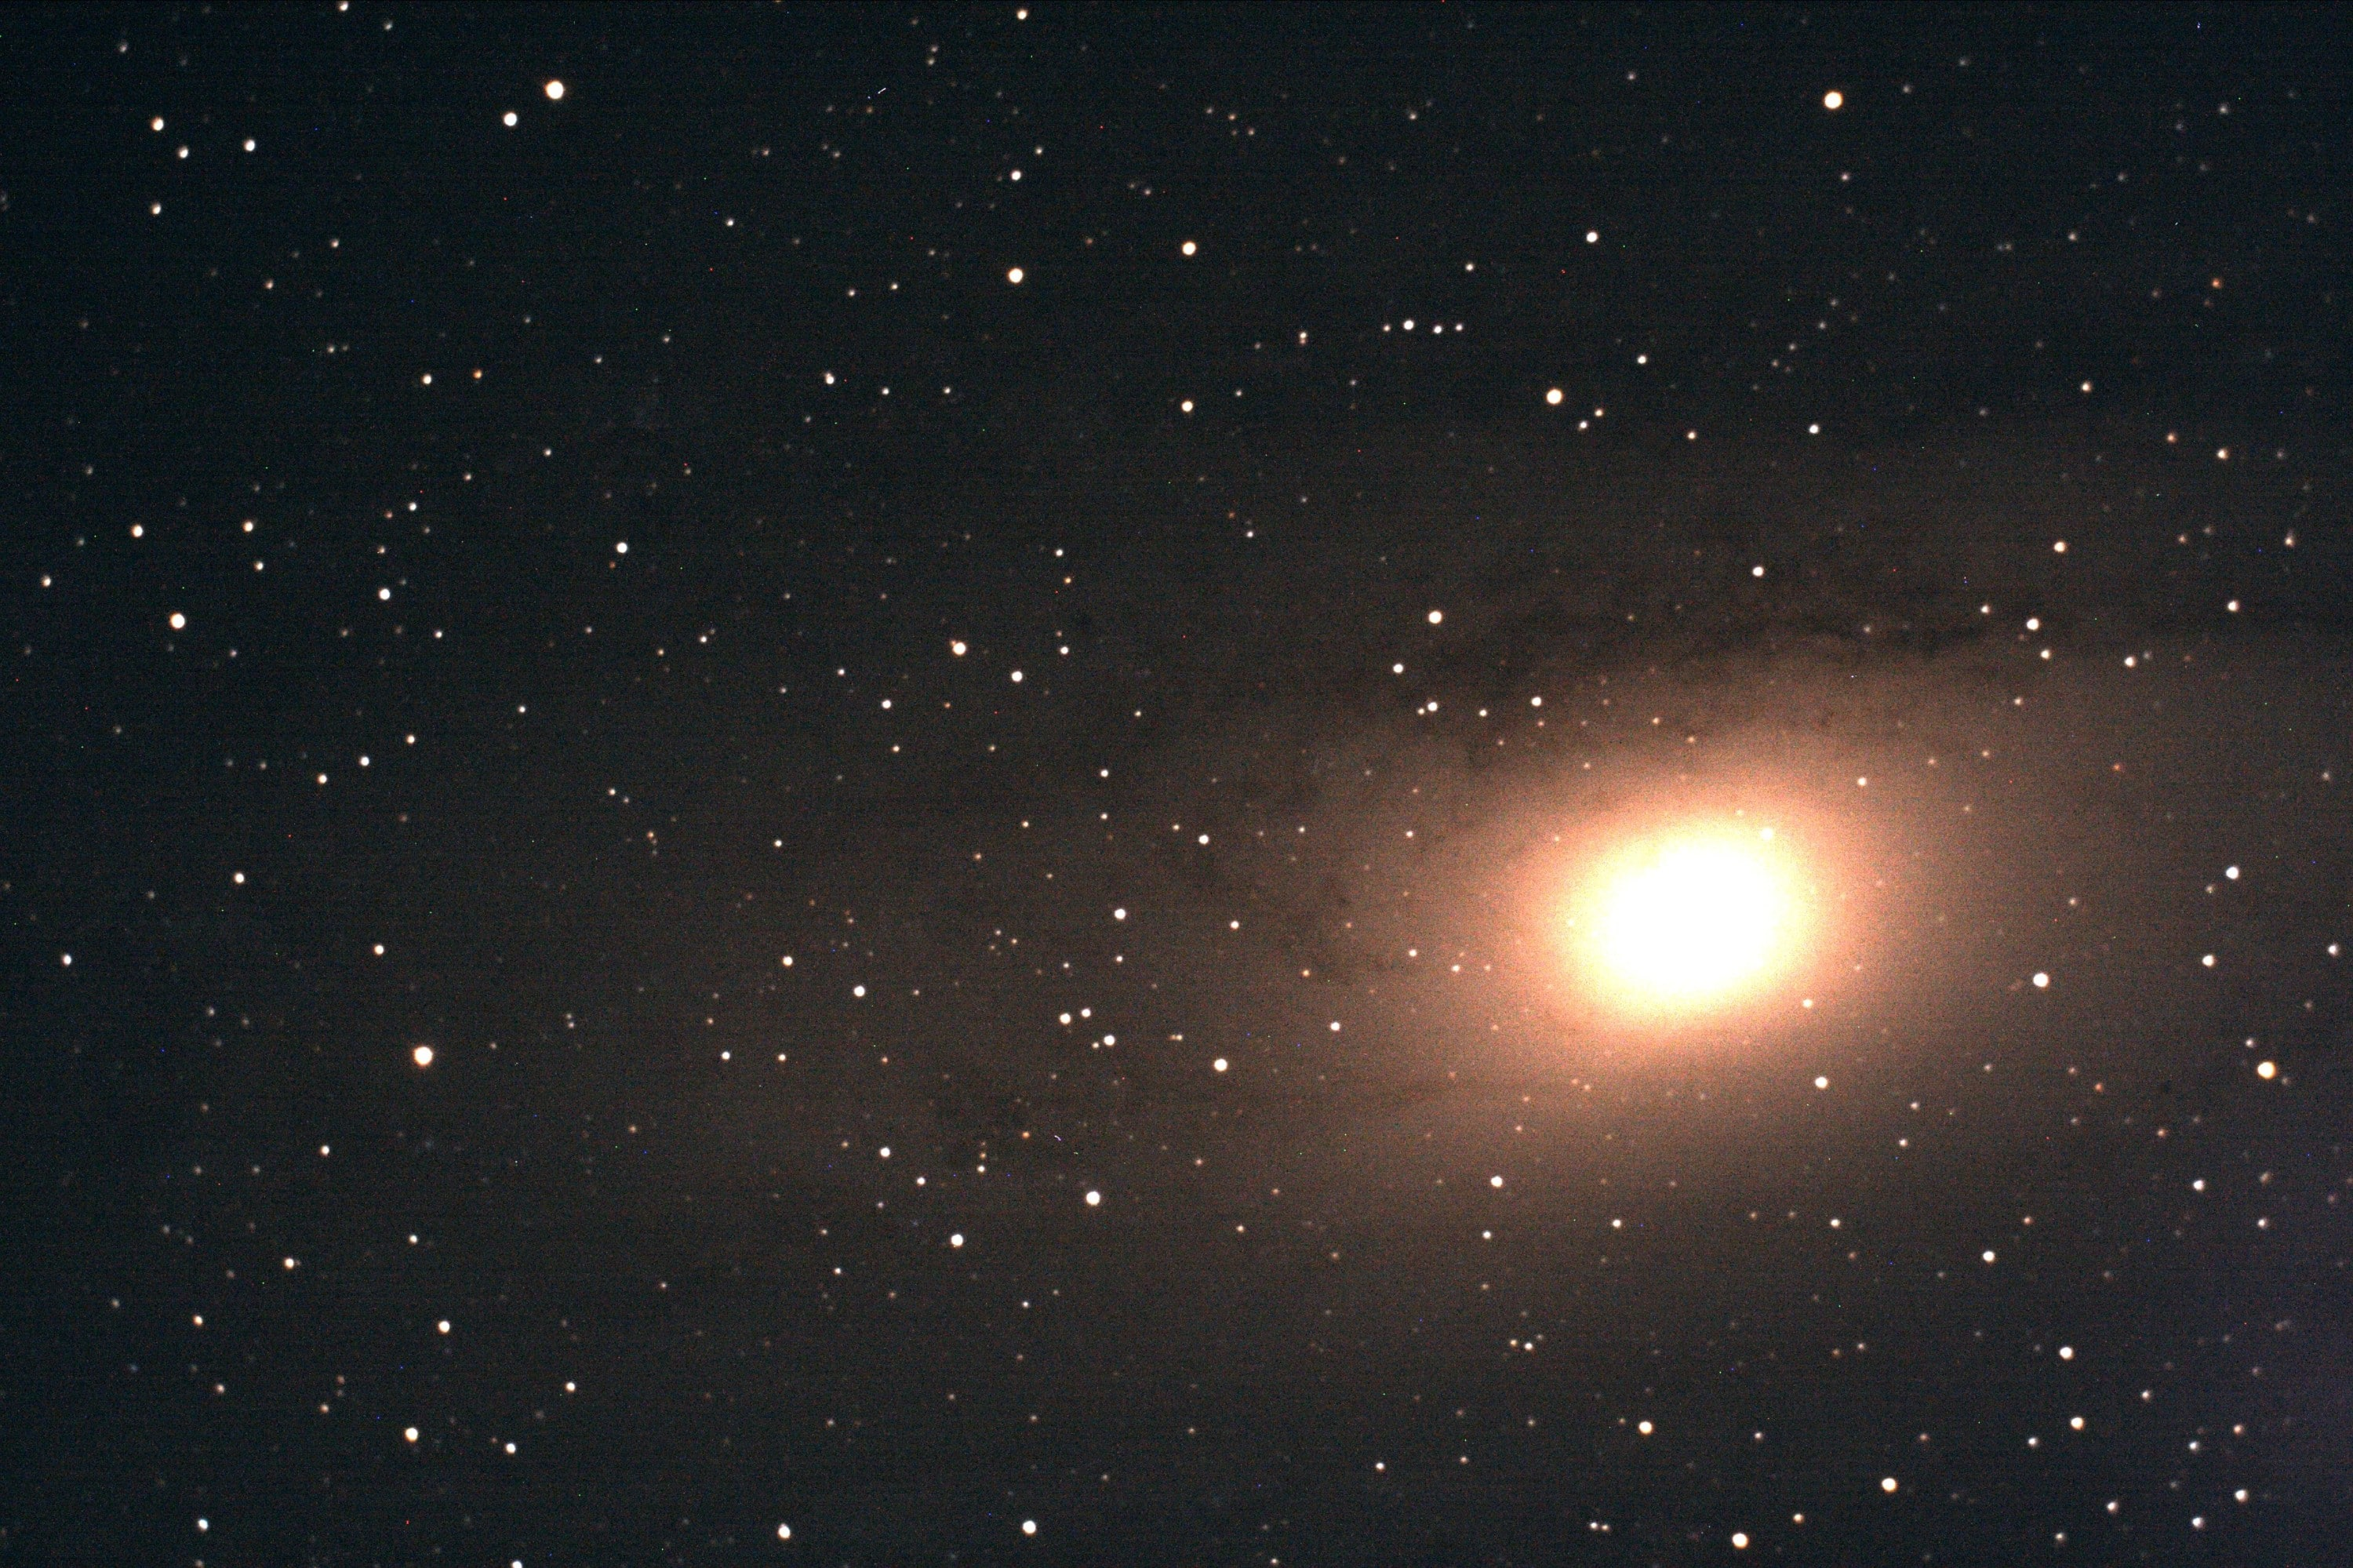 My first image of M31 galaxy. Shawn Nielsen 2008